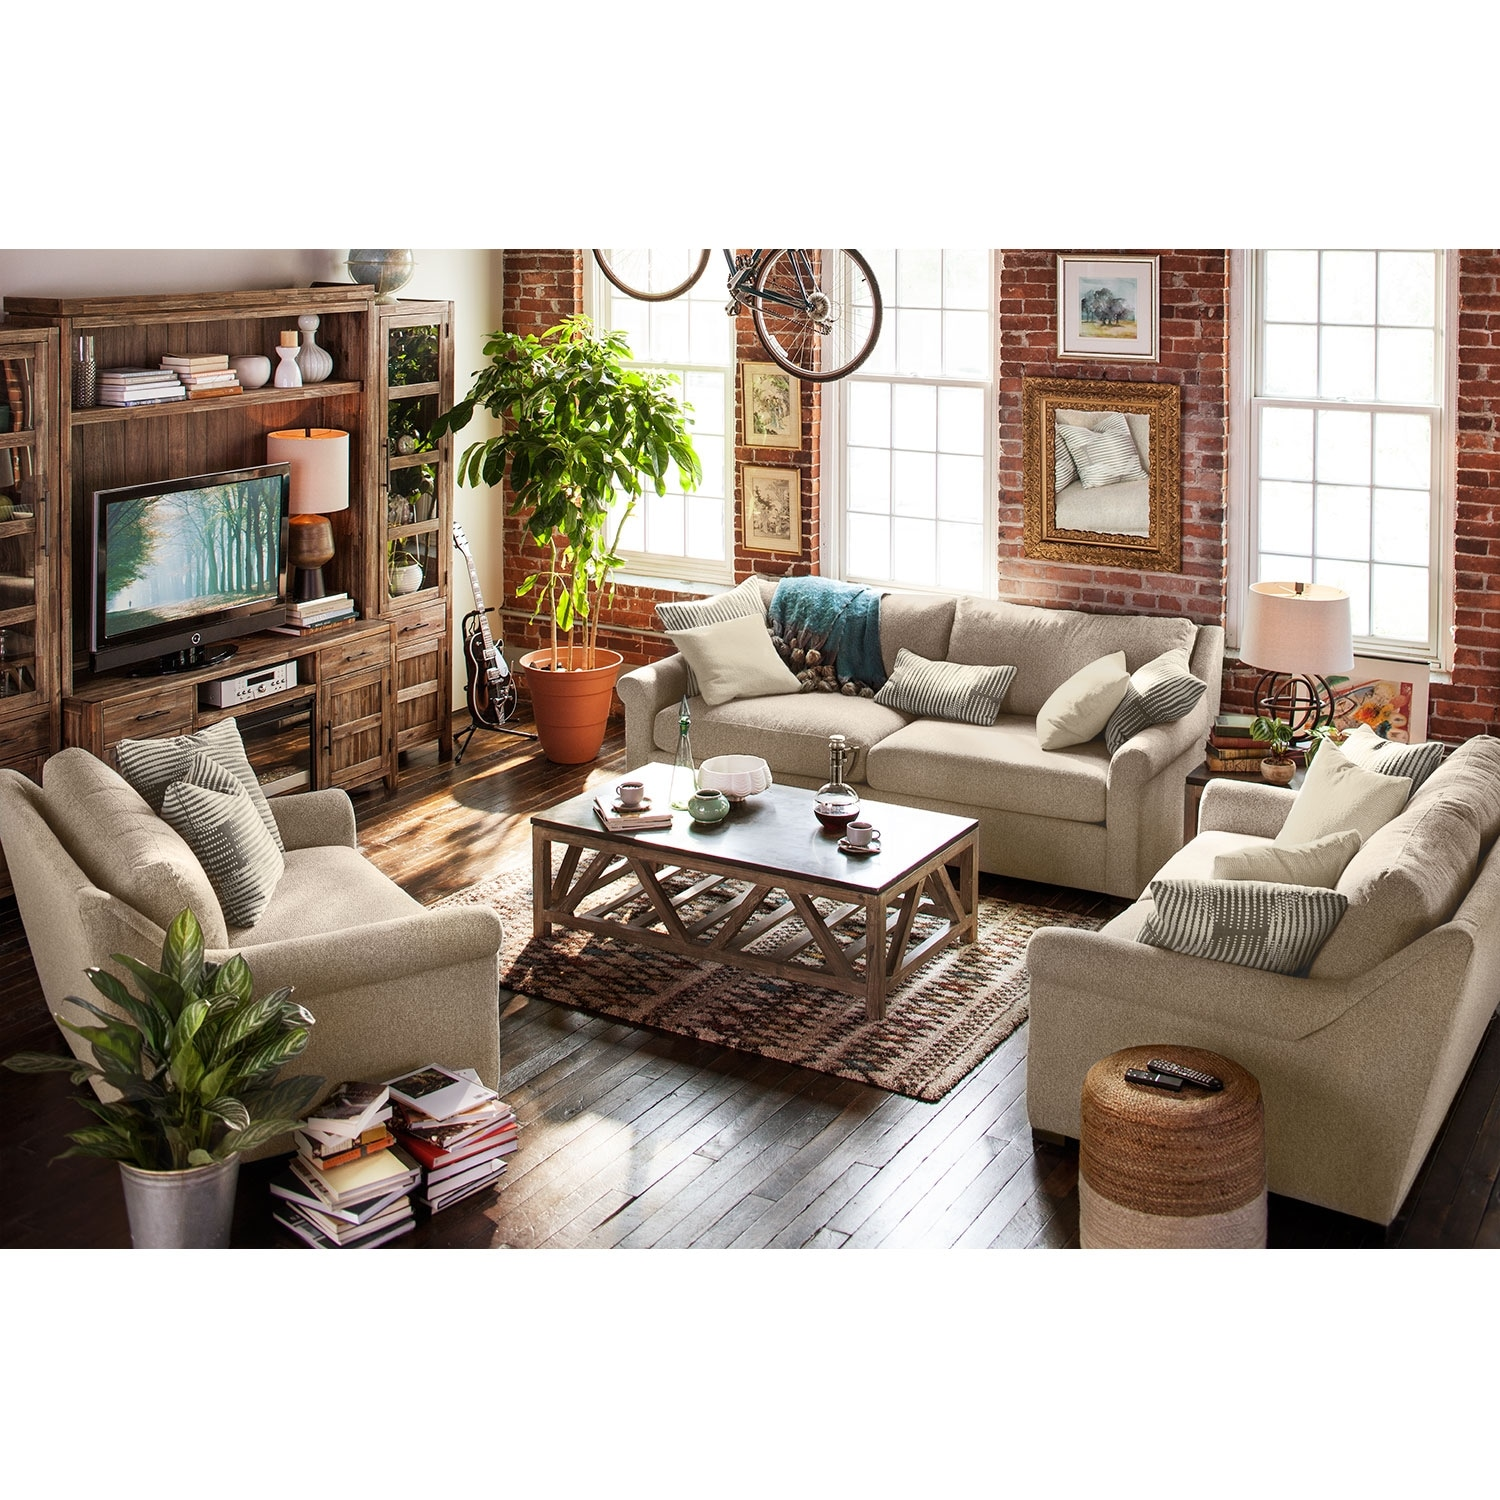 loveseat and chair a half swing for balcony robertson comfort sofa set